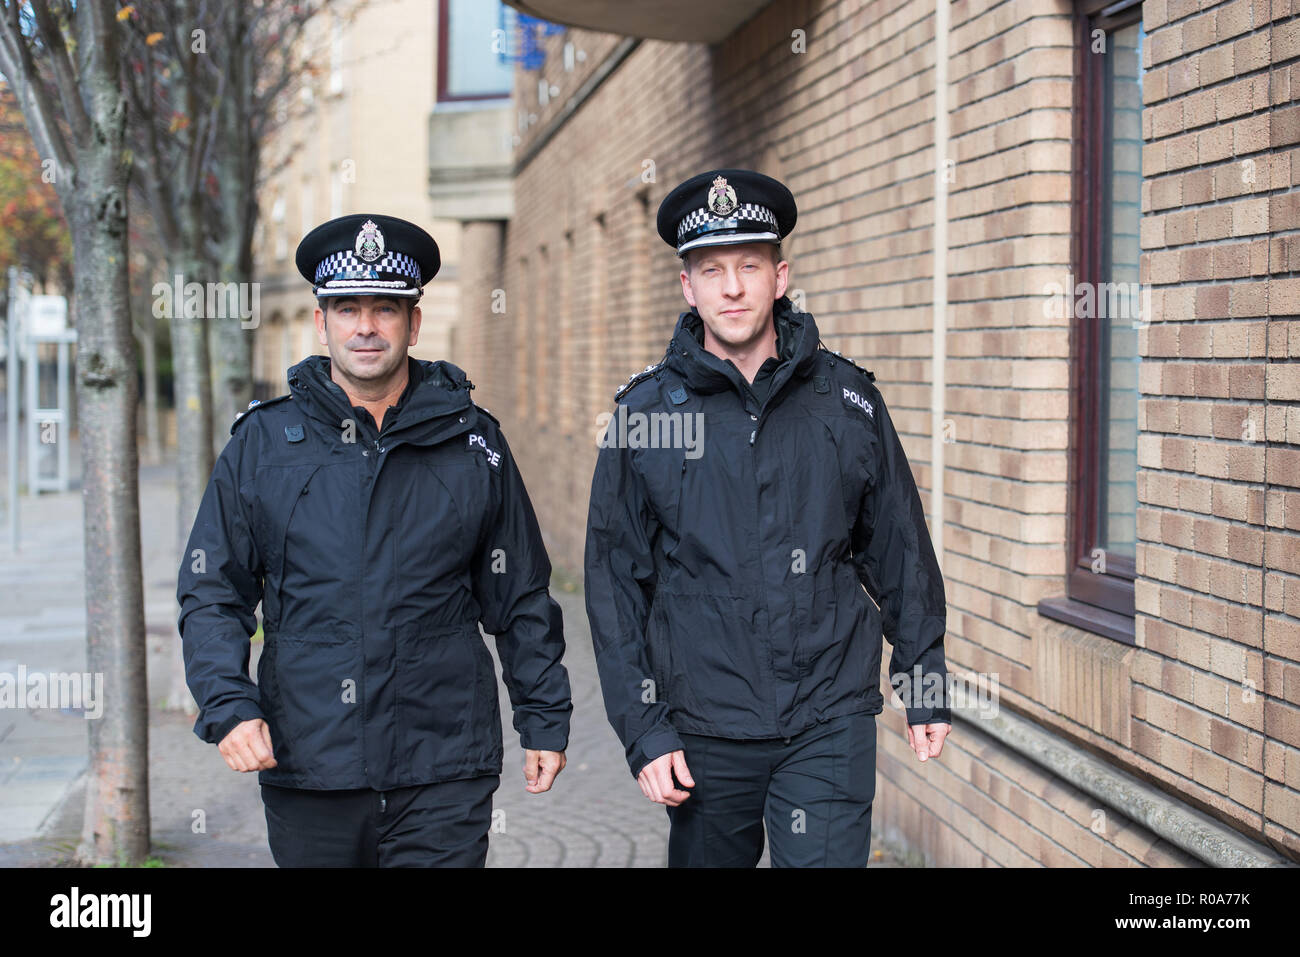 Chief Supt Gareth Blair and Chief Inspector Davie Robertson at St Leonards Police Station, Bonfire night interview - Stock Image